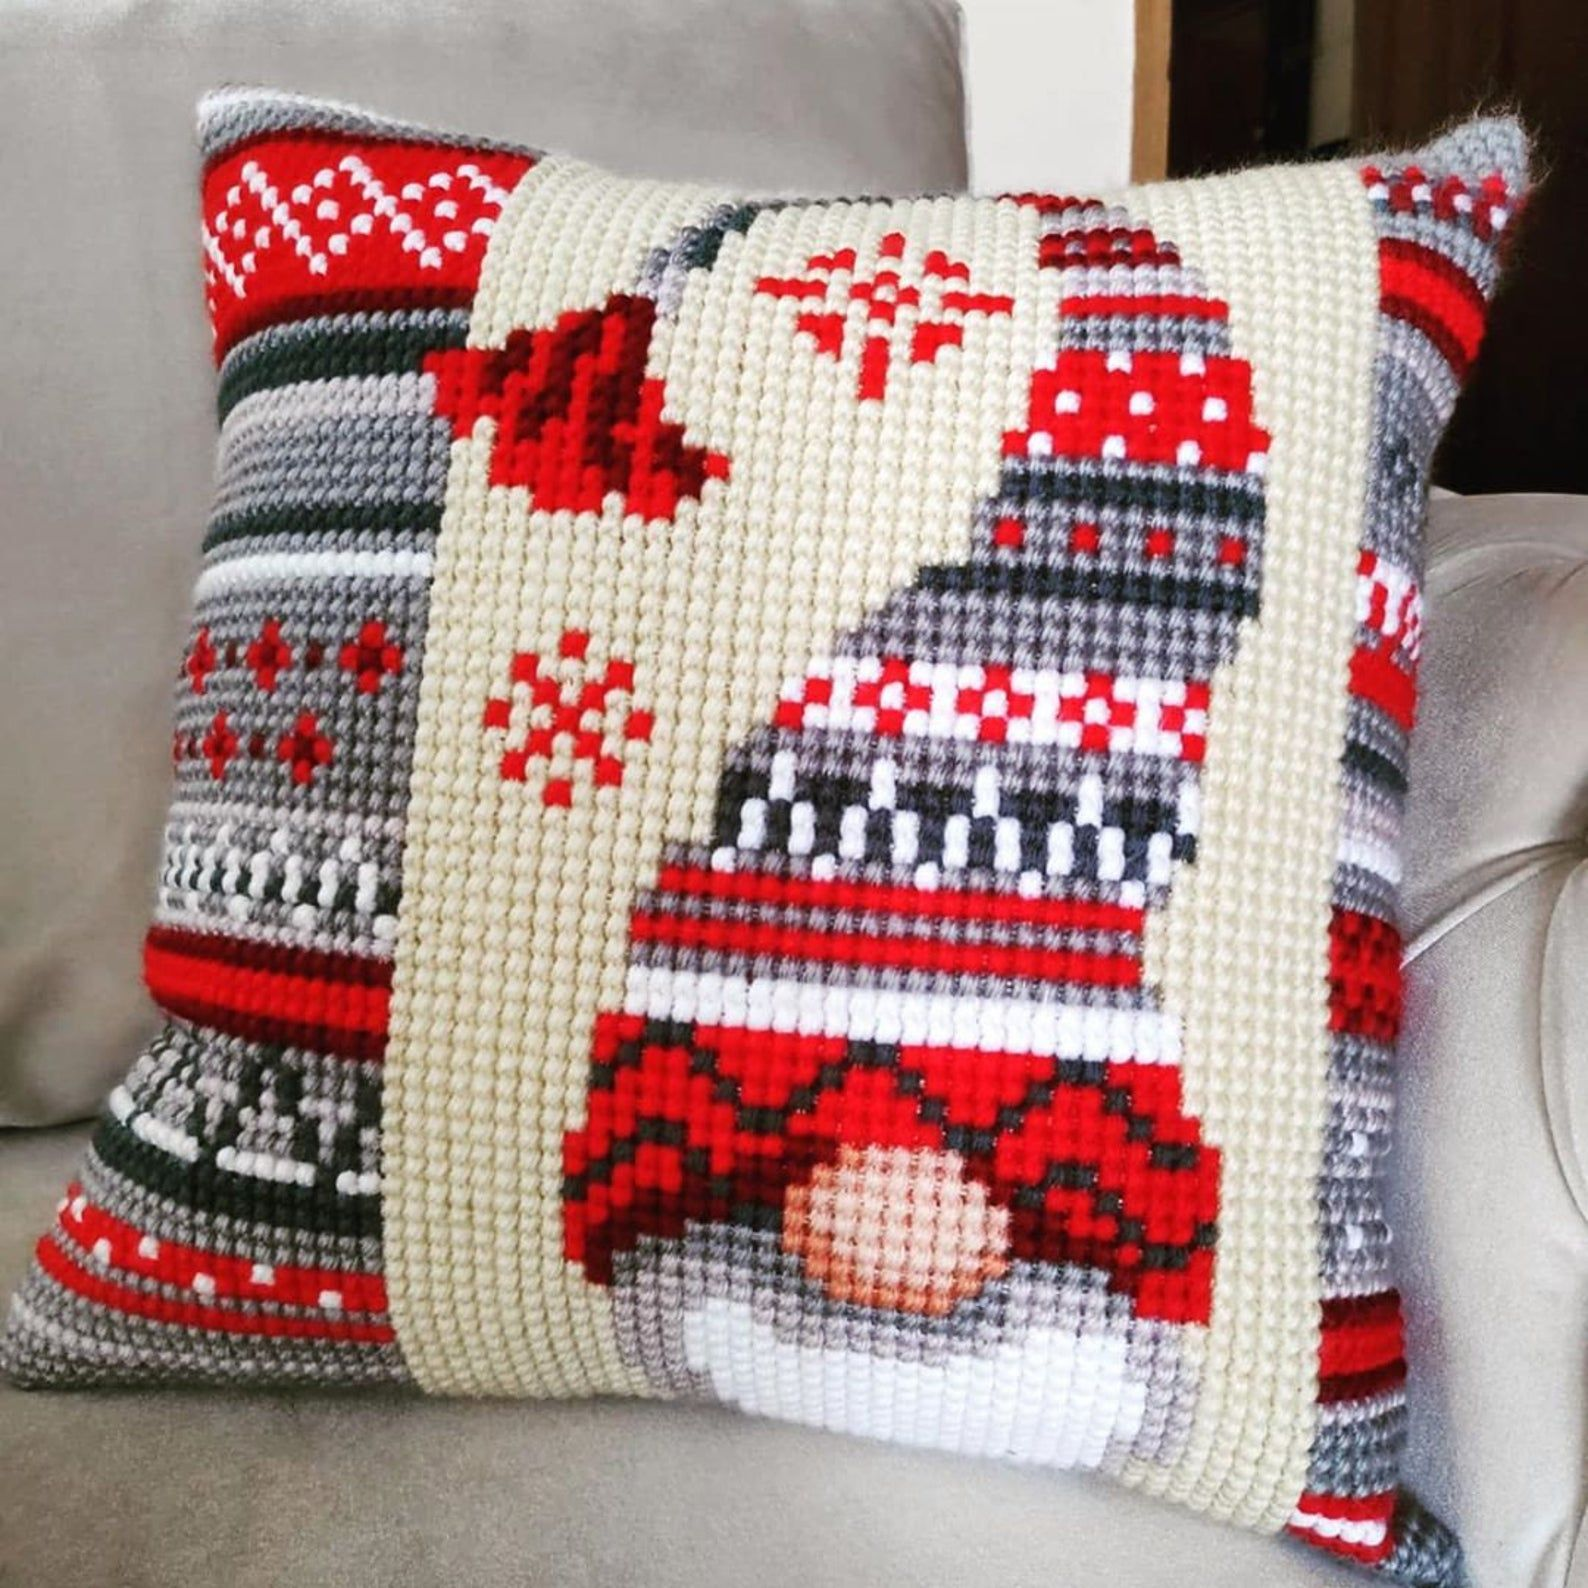 Set of 2 DIY cross stitch kit, rustic Christmas embroidery for a cushion